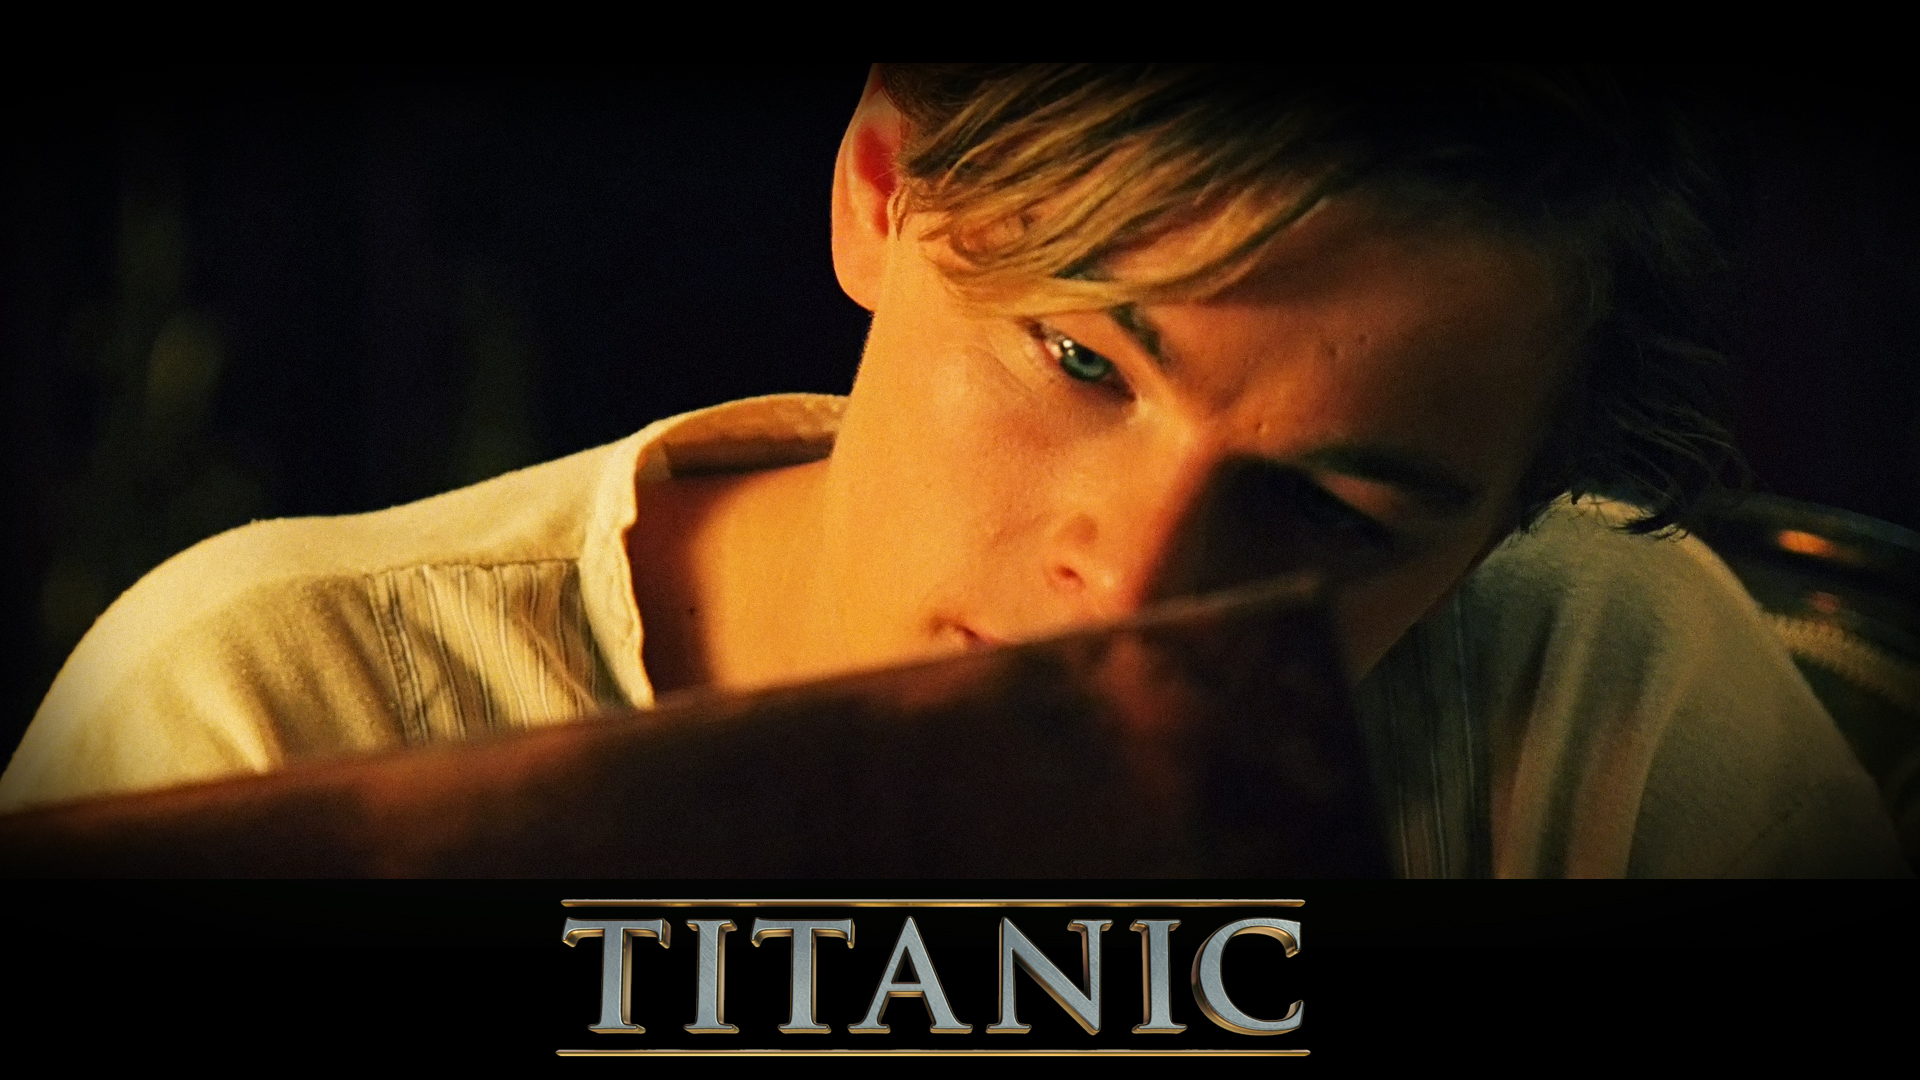 Titanic Love Wallpaper Hd : Titanic Wallpaper 14755 1920x1080 px ~ HDWallSource.com